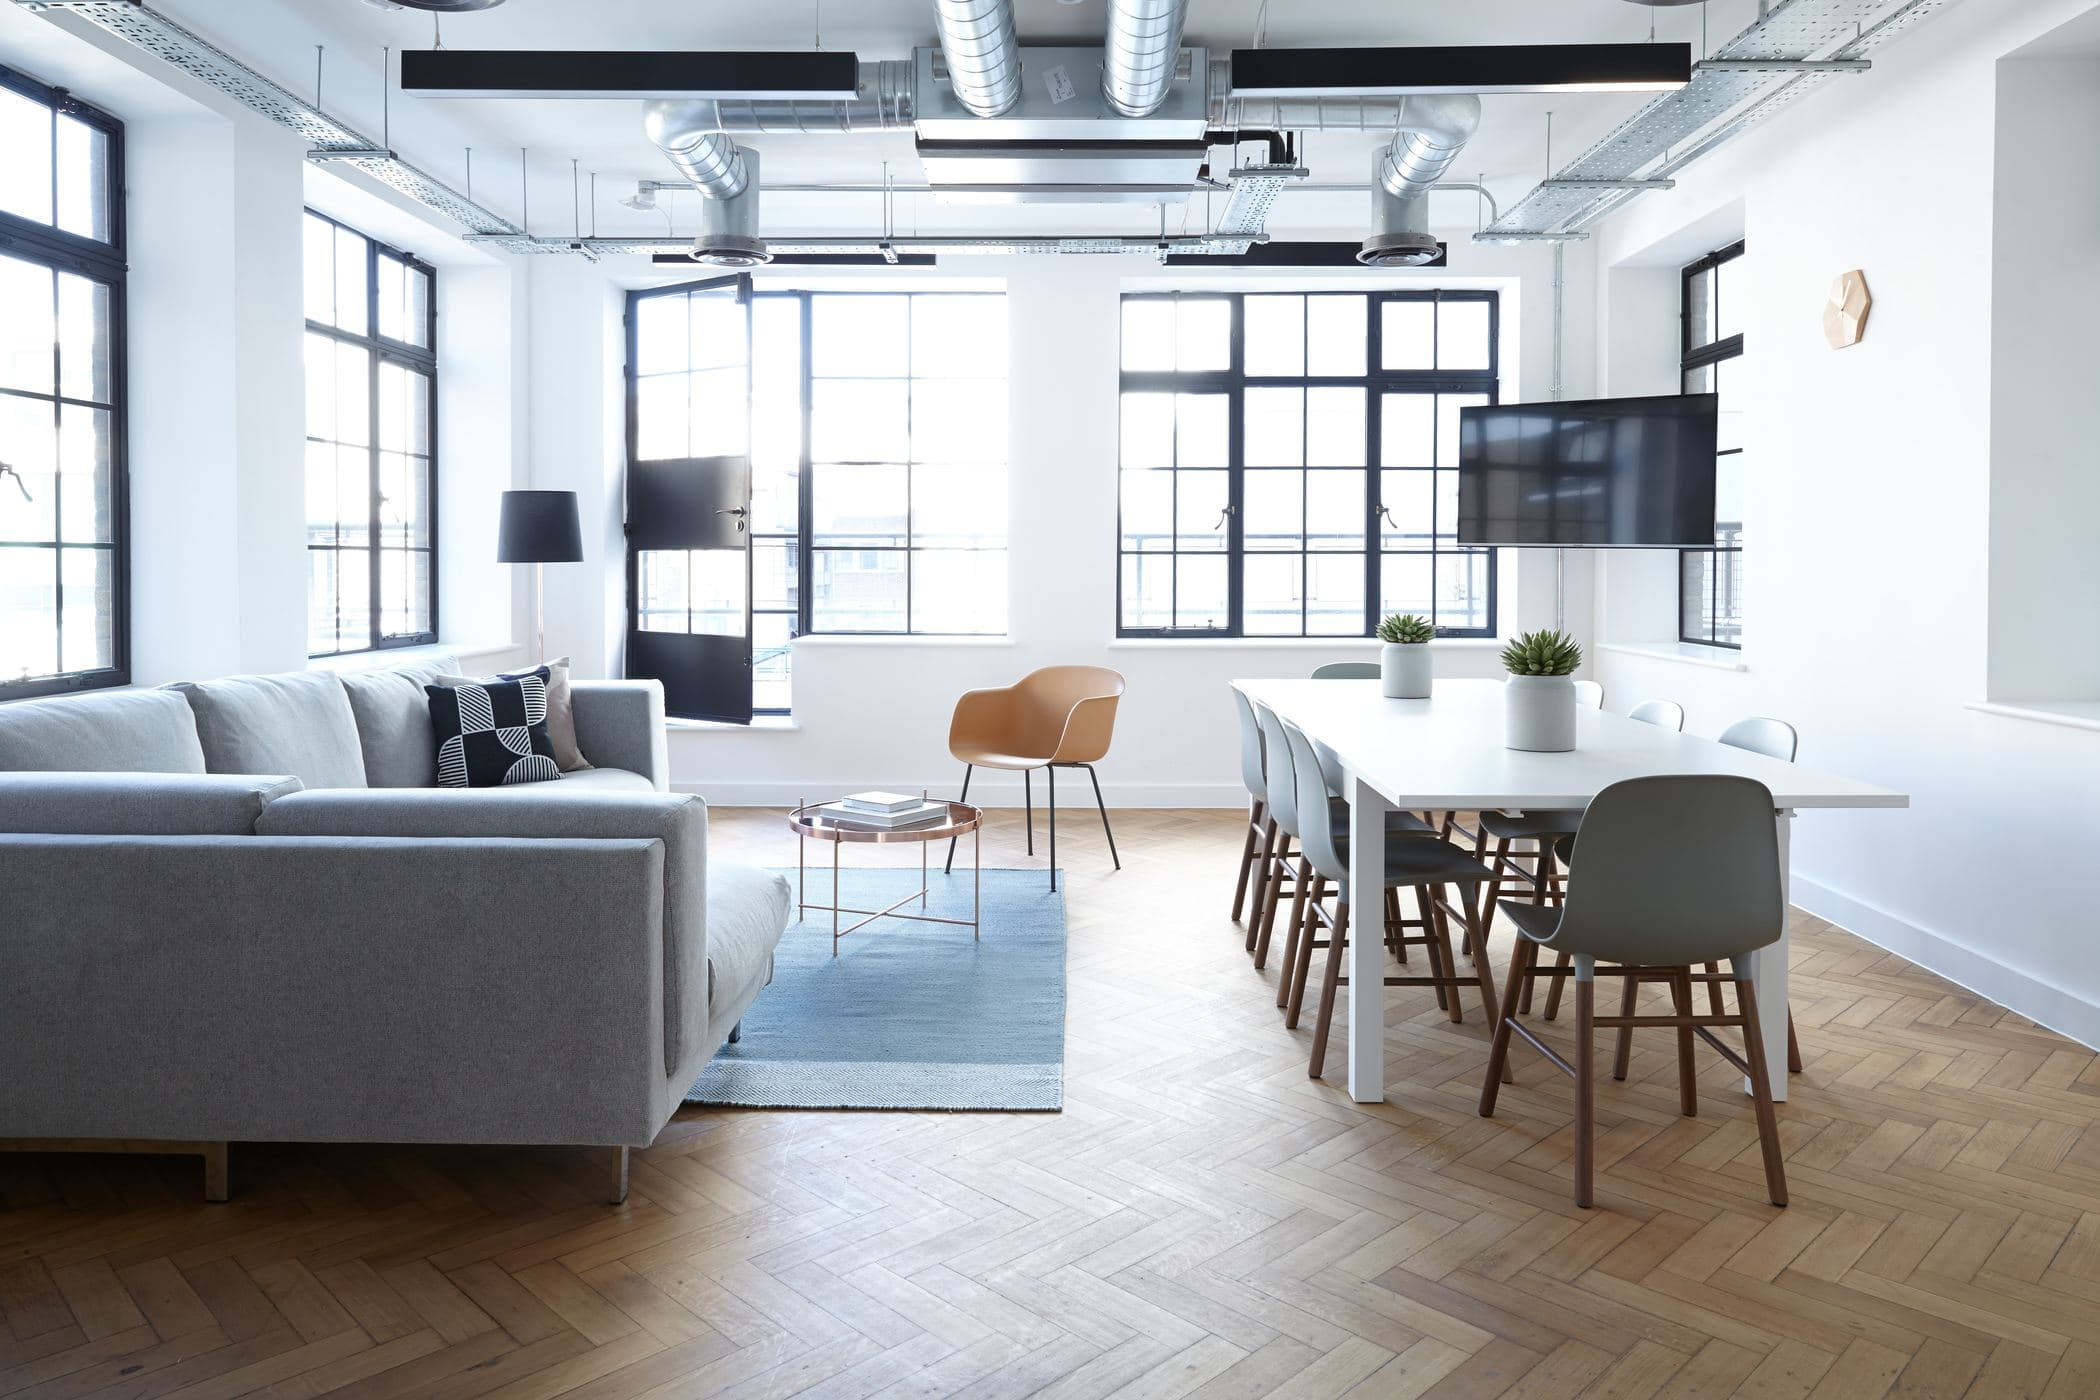 Getting your interiors right